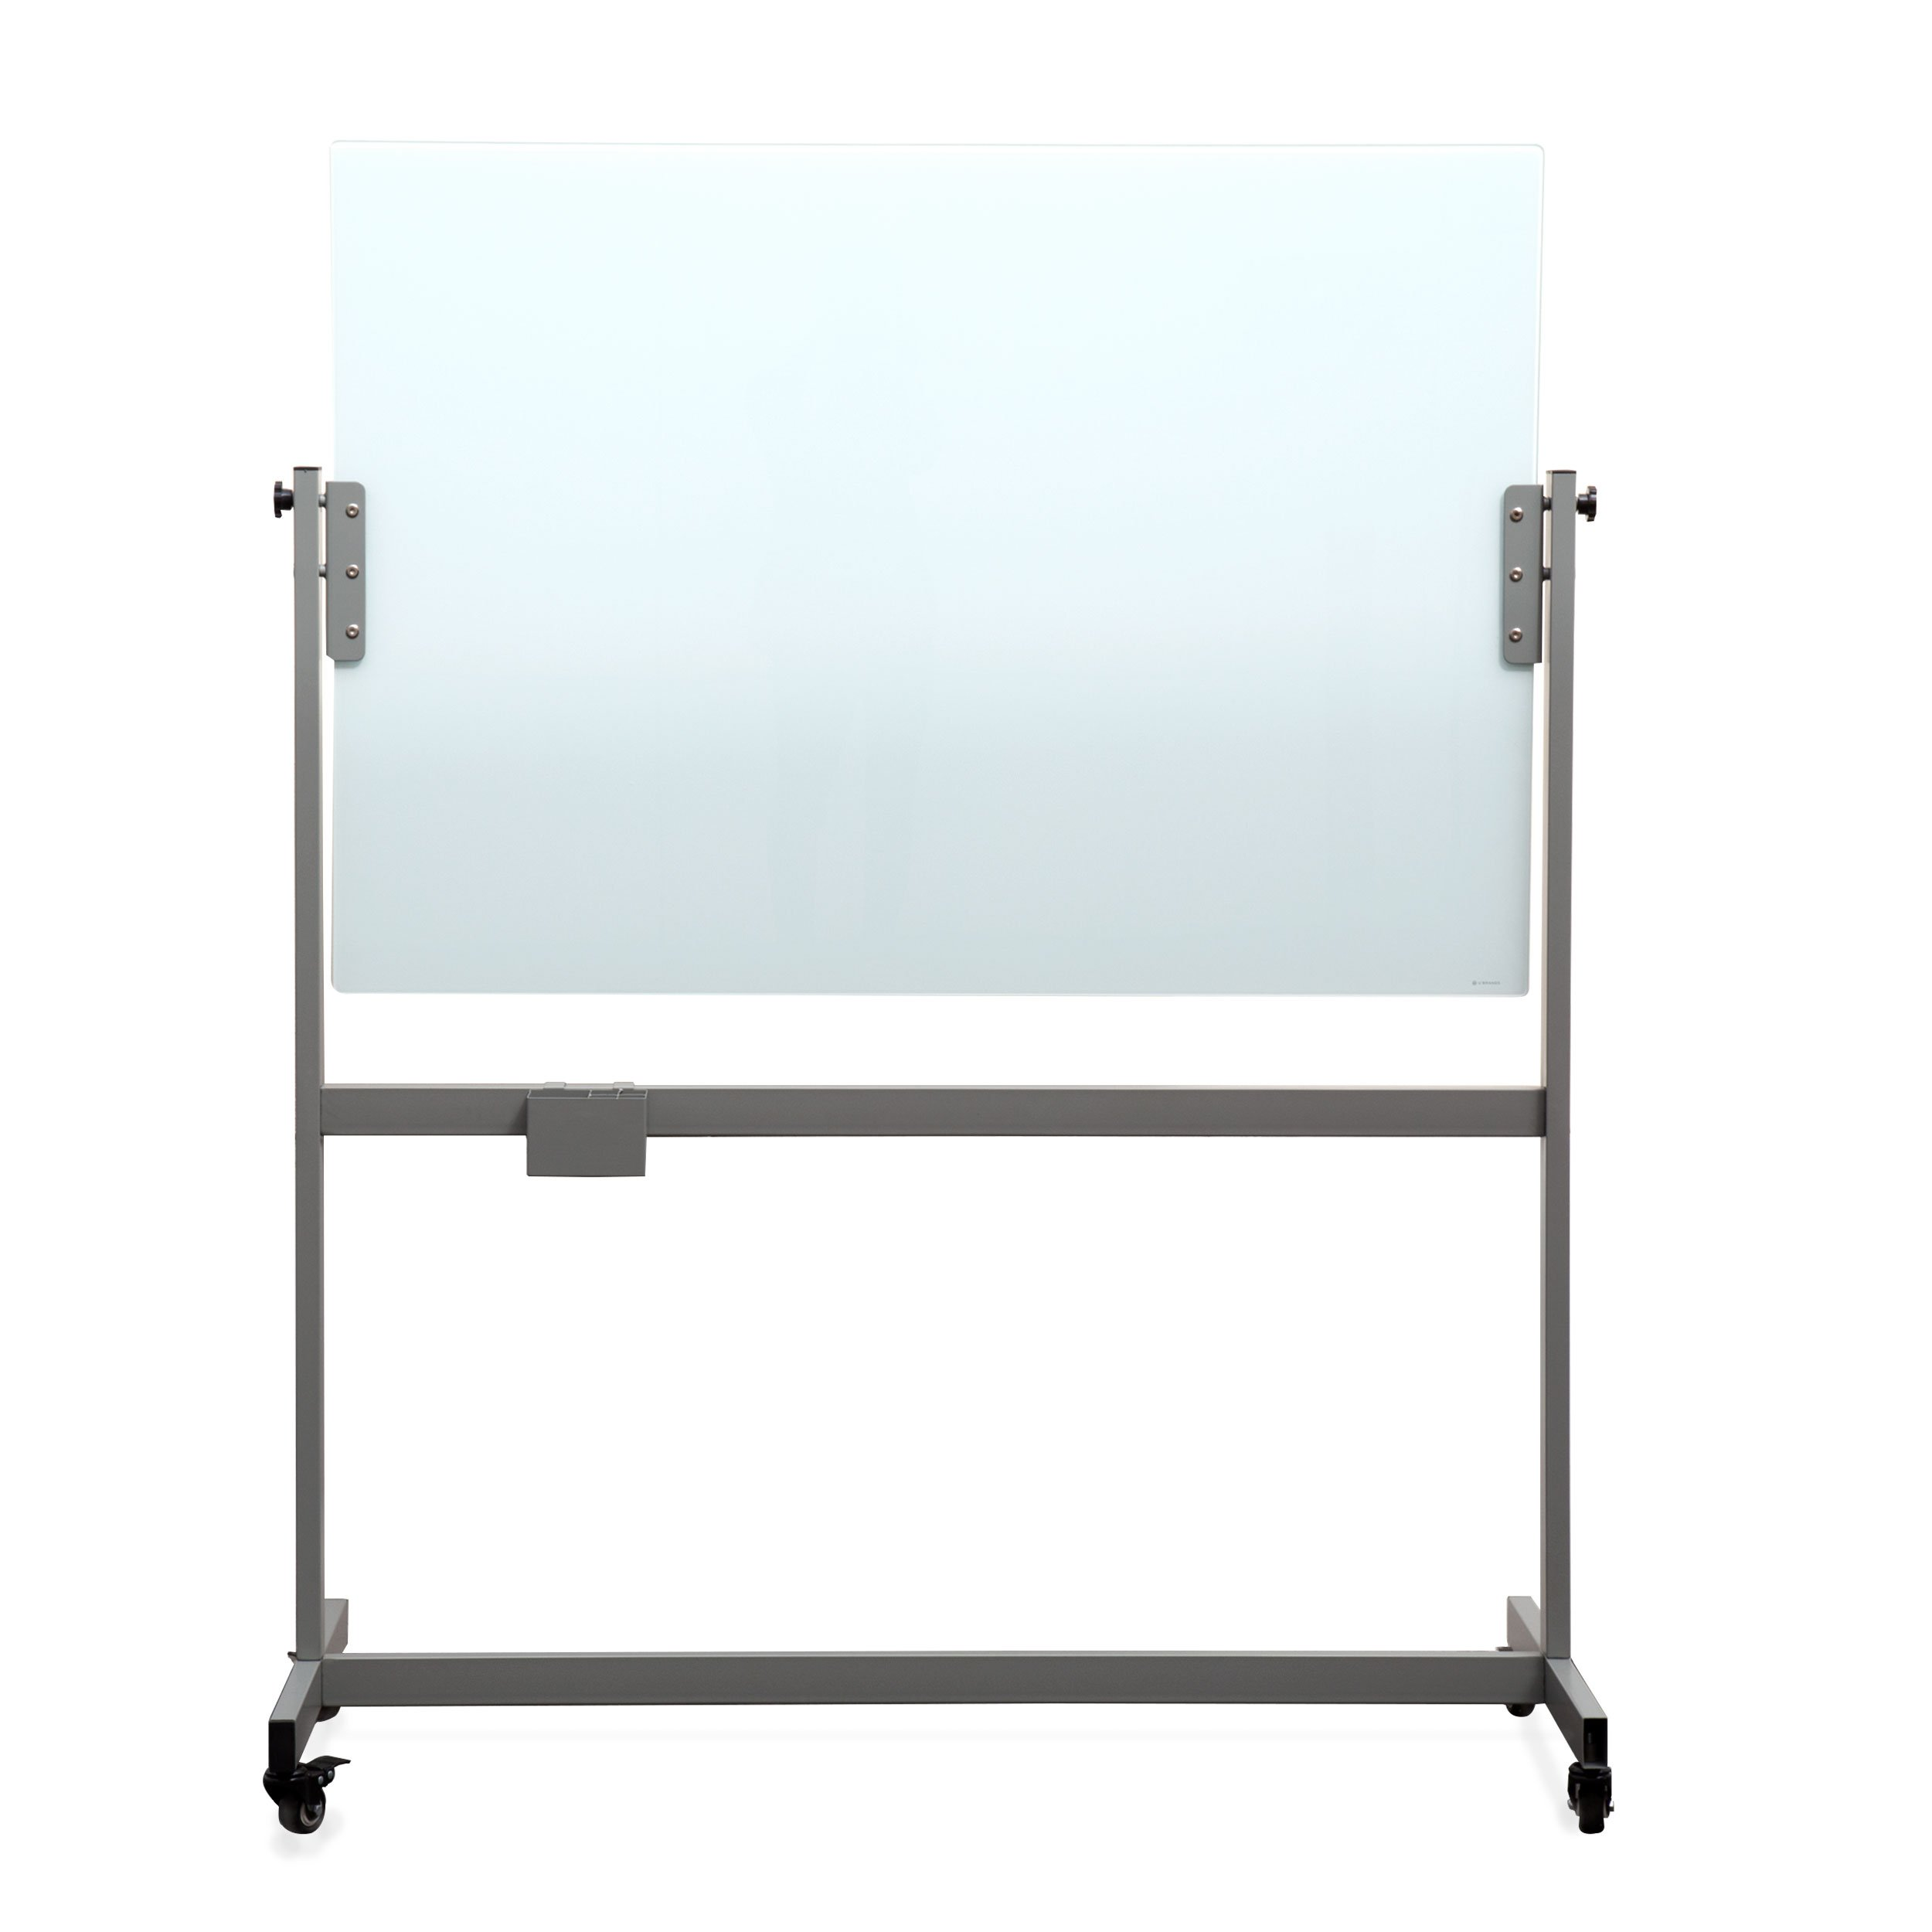 U Brands Glass Dry Erase Board, Double-Sided Rolling Easel, 47 x 35 Inches, Casters Included, White Frosted Surface, Frameless